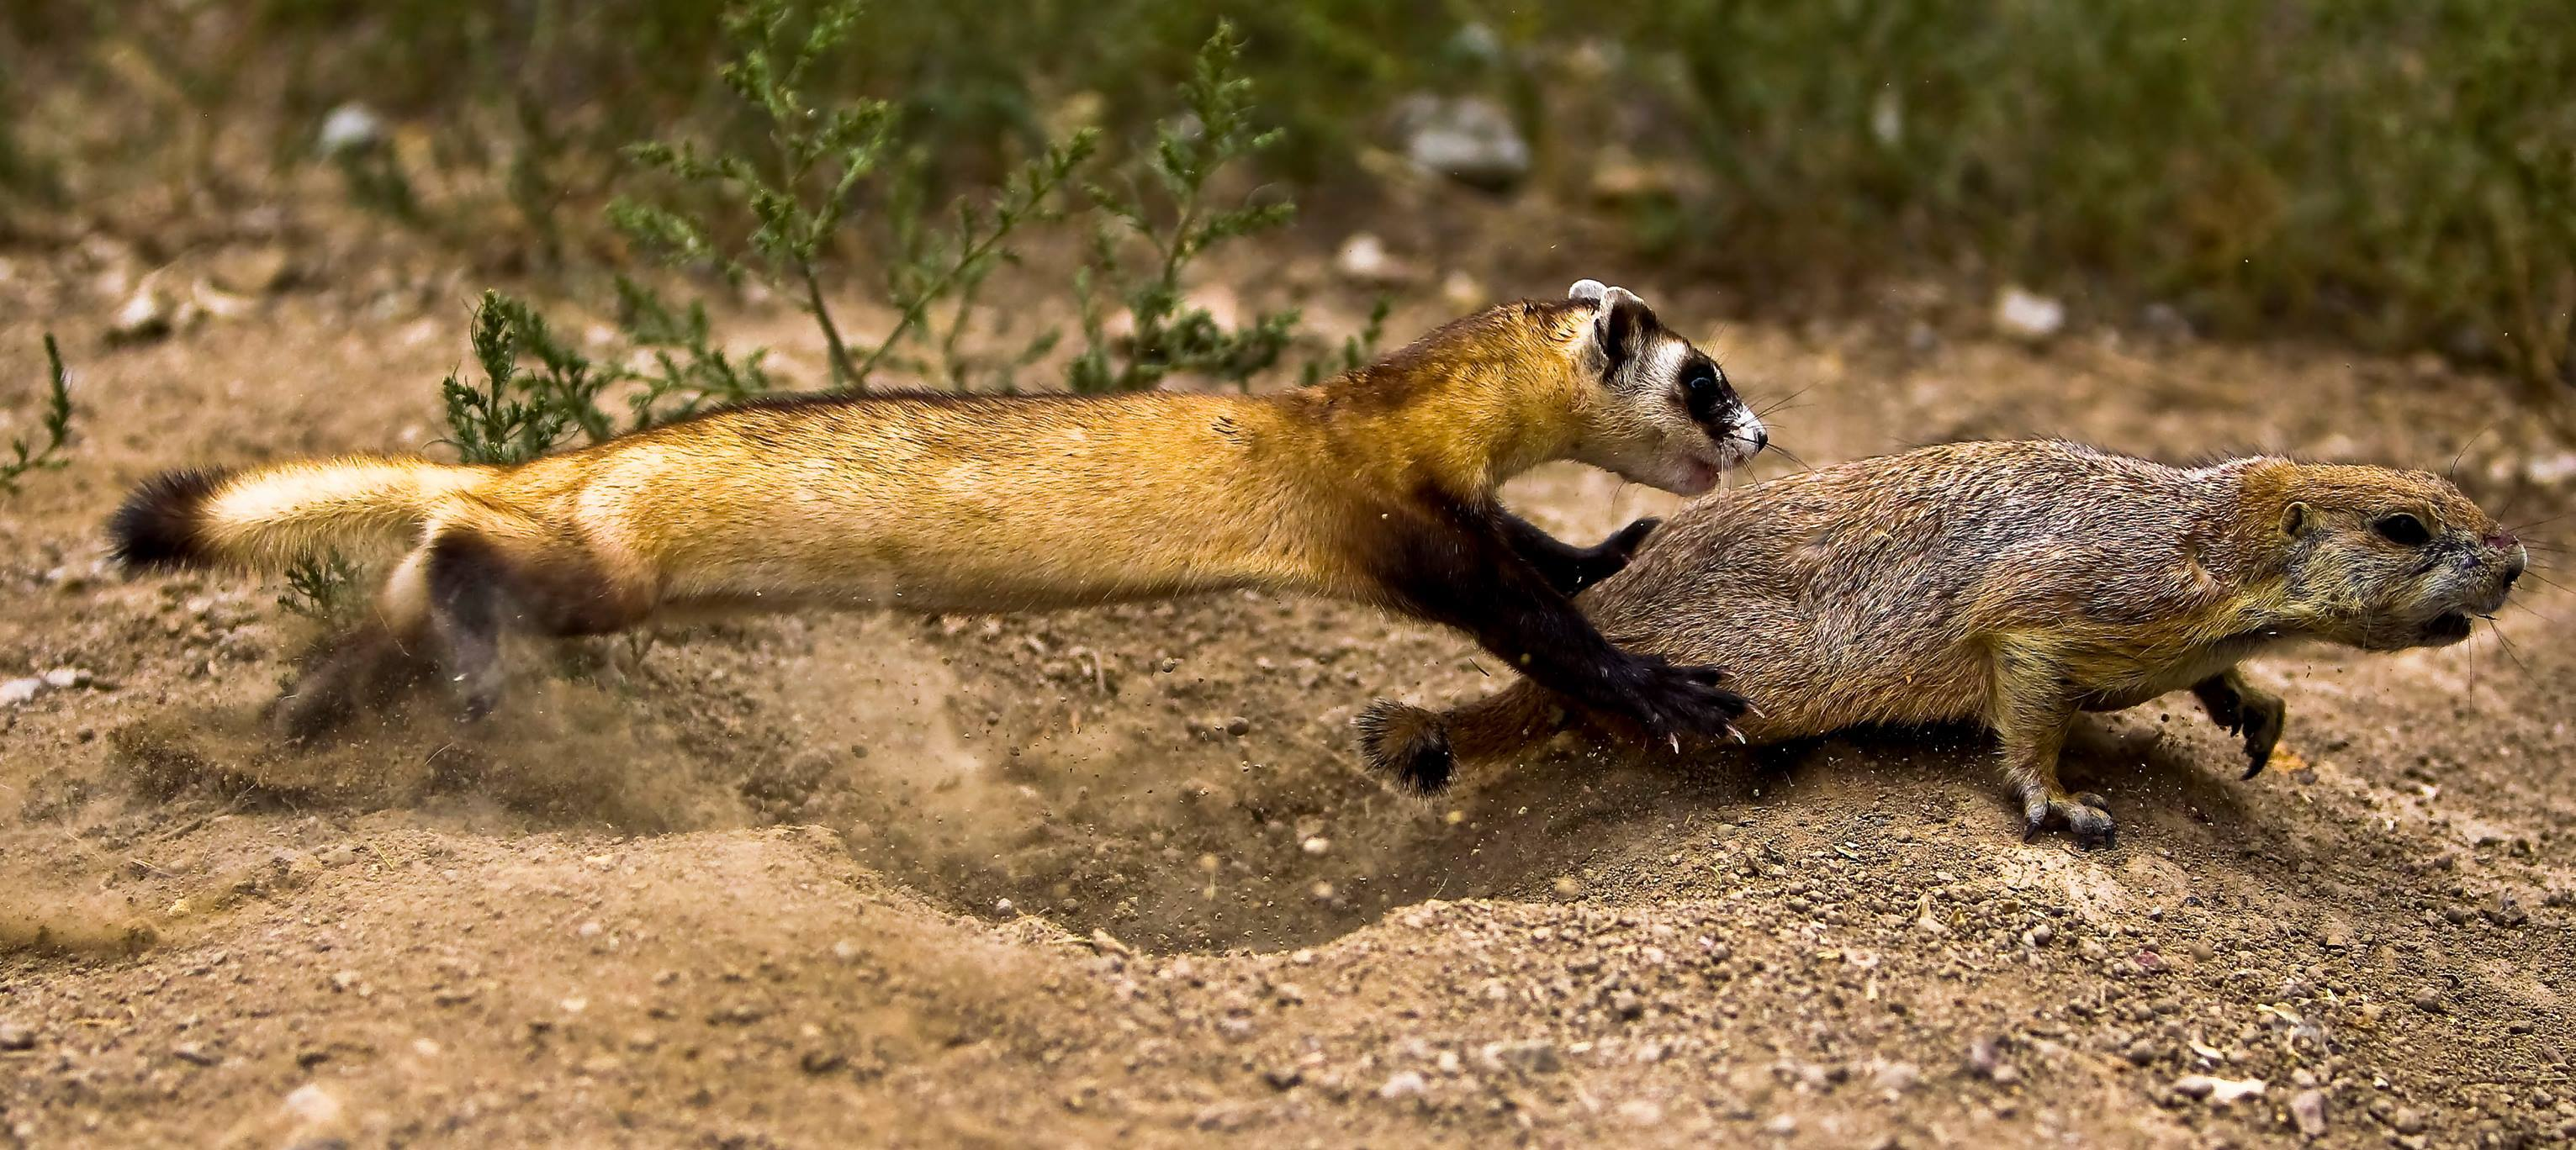 Black-footed_Ferret_Learning_to_Hunt.jpg